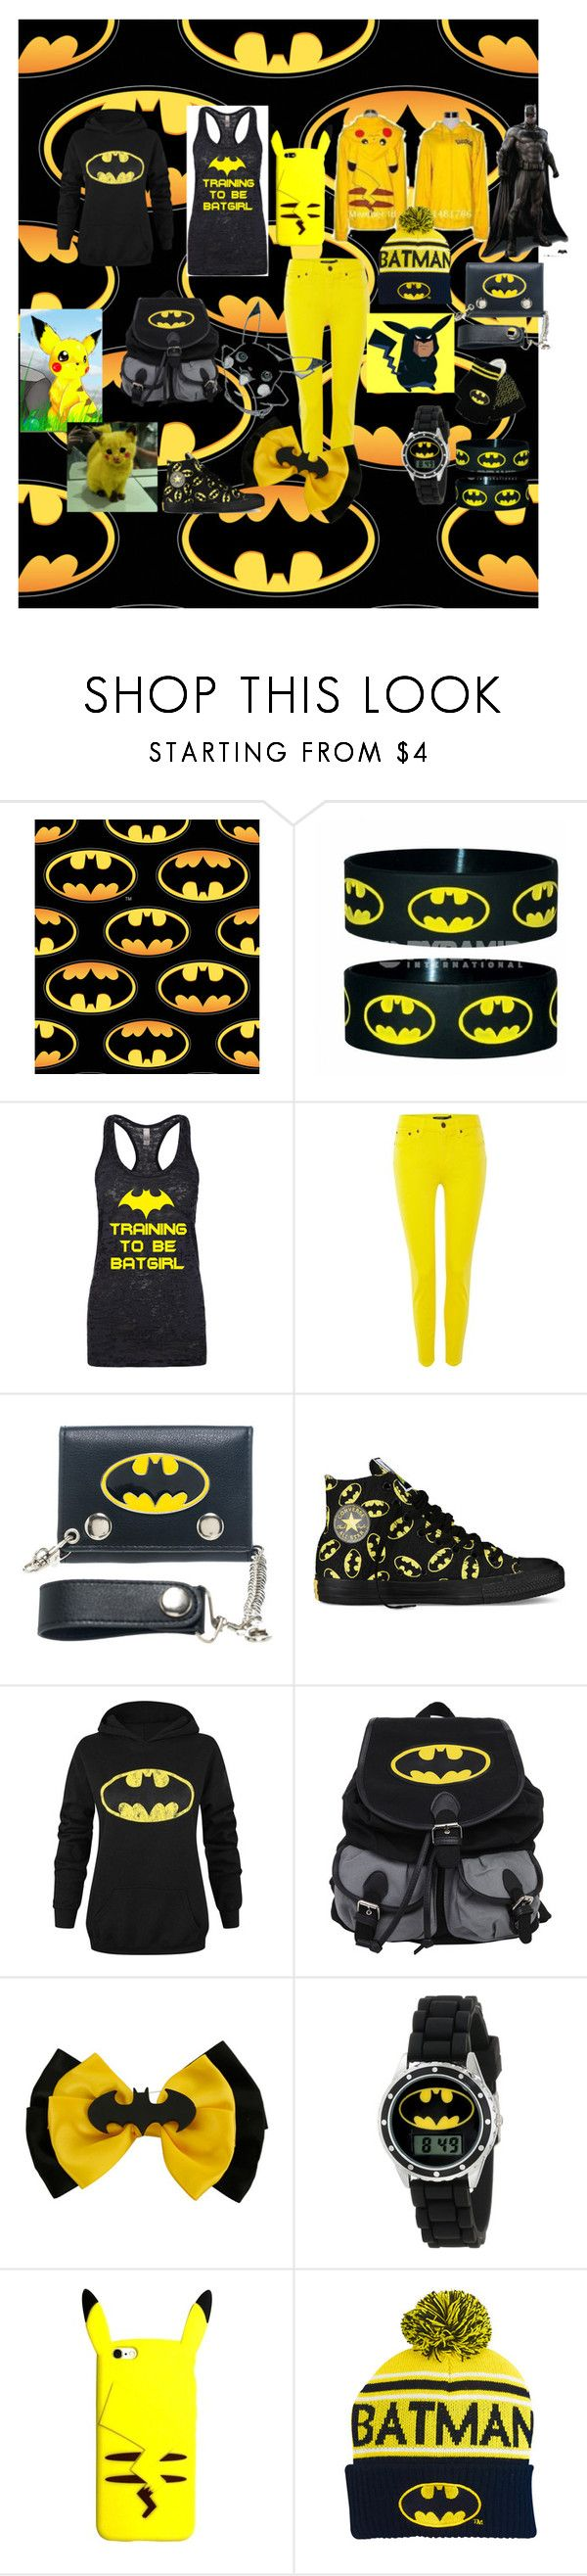 """Batman/Pikachu"" by skullmaster ❤ liked on Polyvore featuring Lauren Ralph Lauren, Bioworld and Converse"